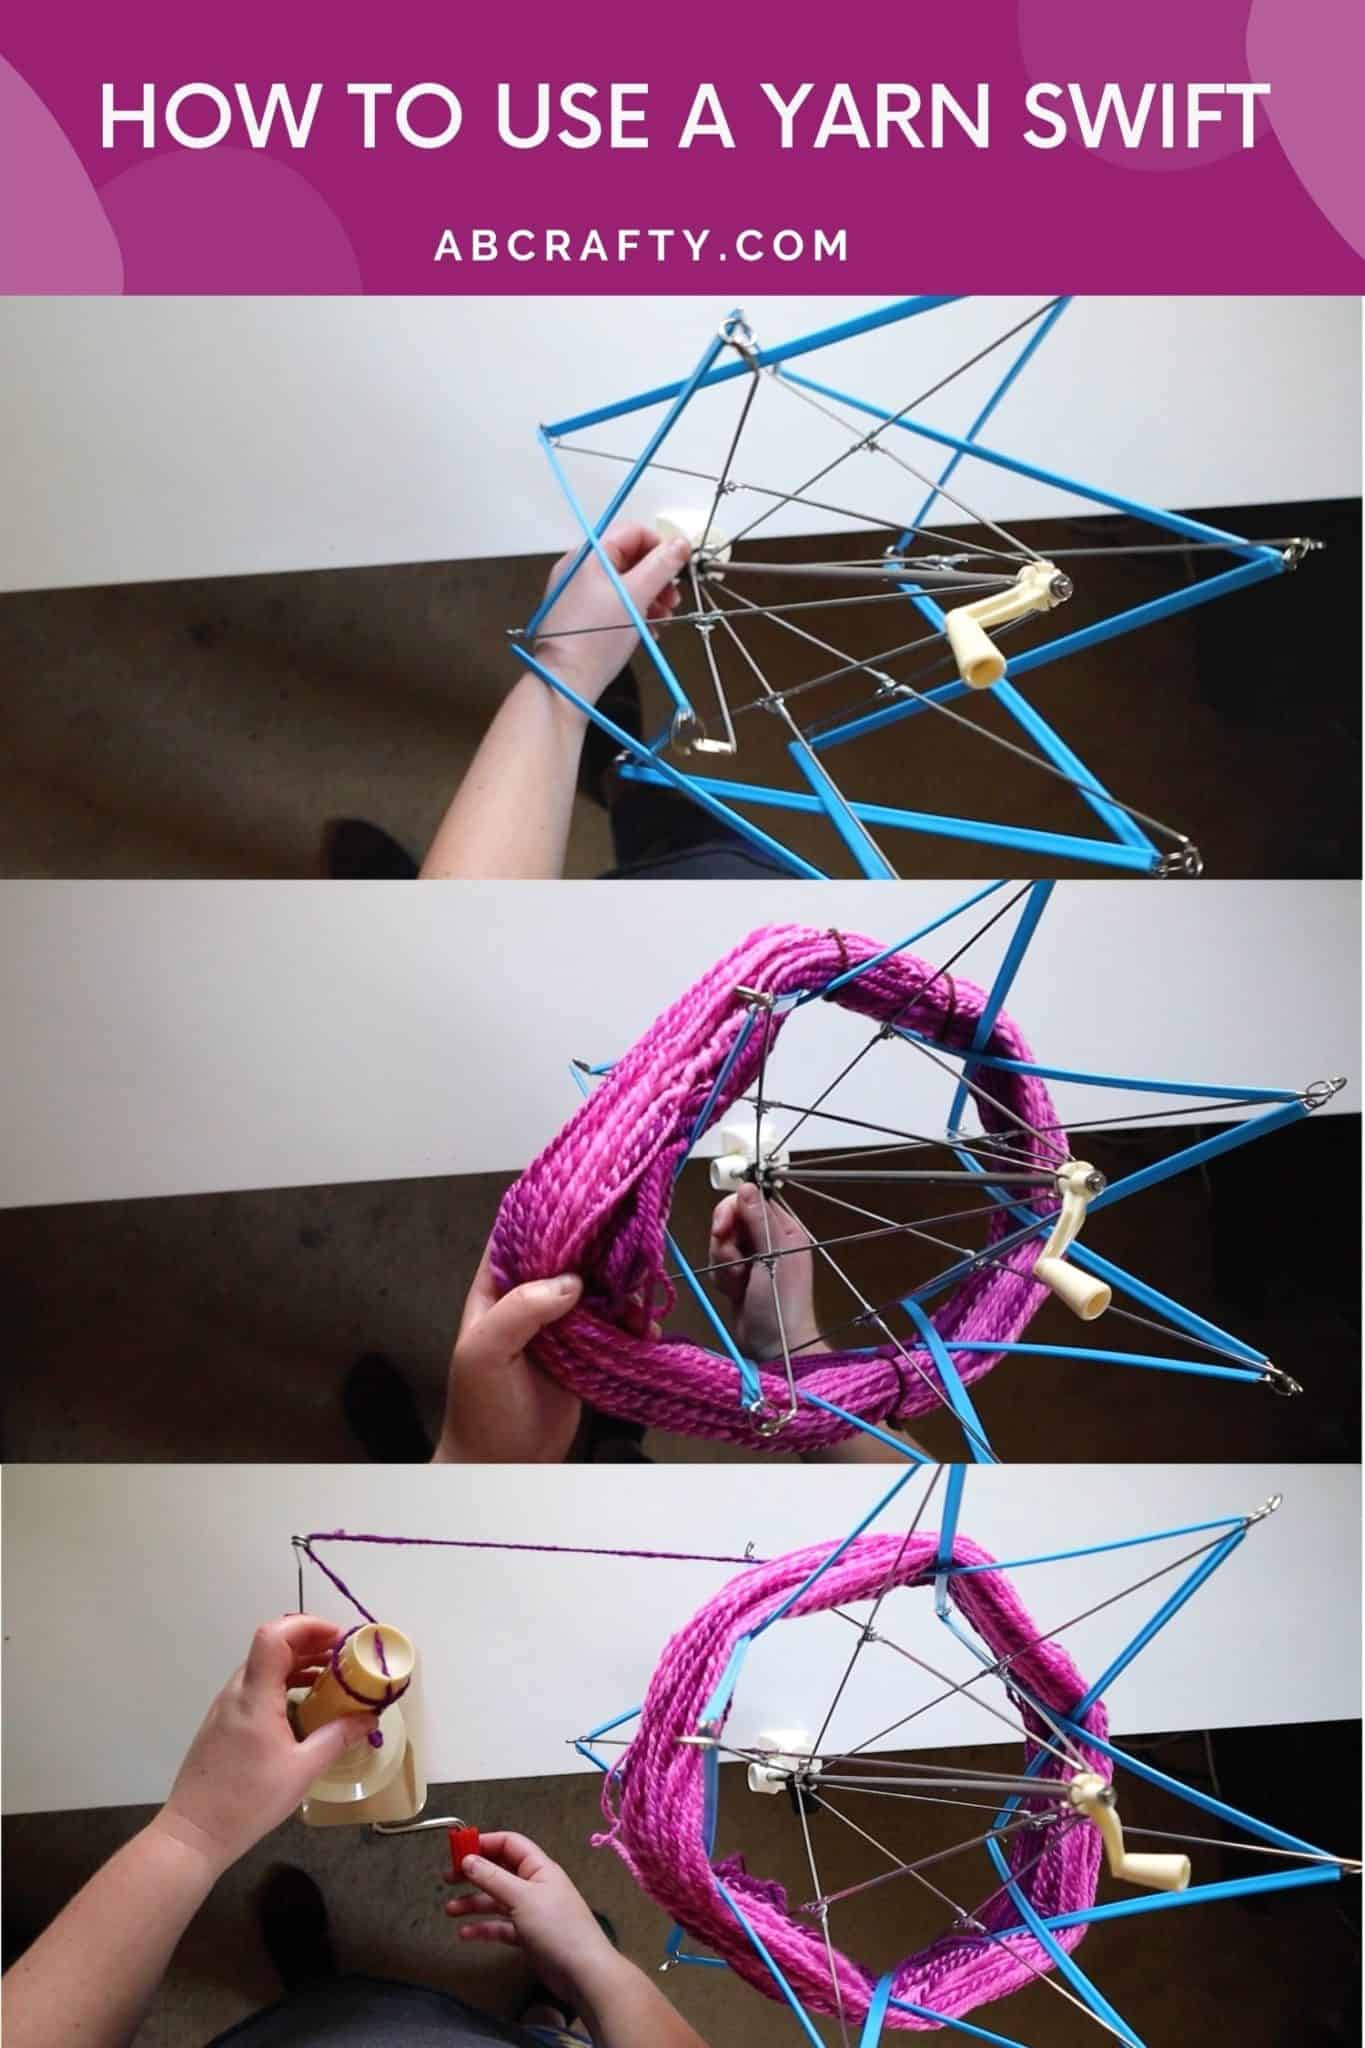 """three photos showing the process to place a hank of yarn onto a yarn swift and yarn winder with the title """"how to use a yarn swift"""""""